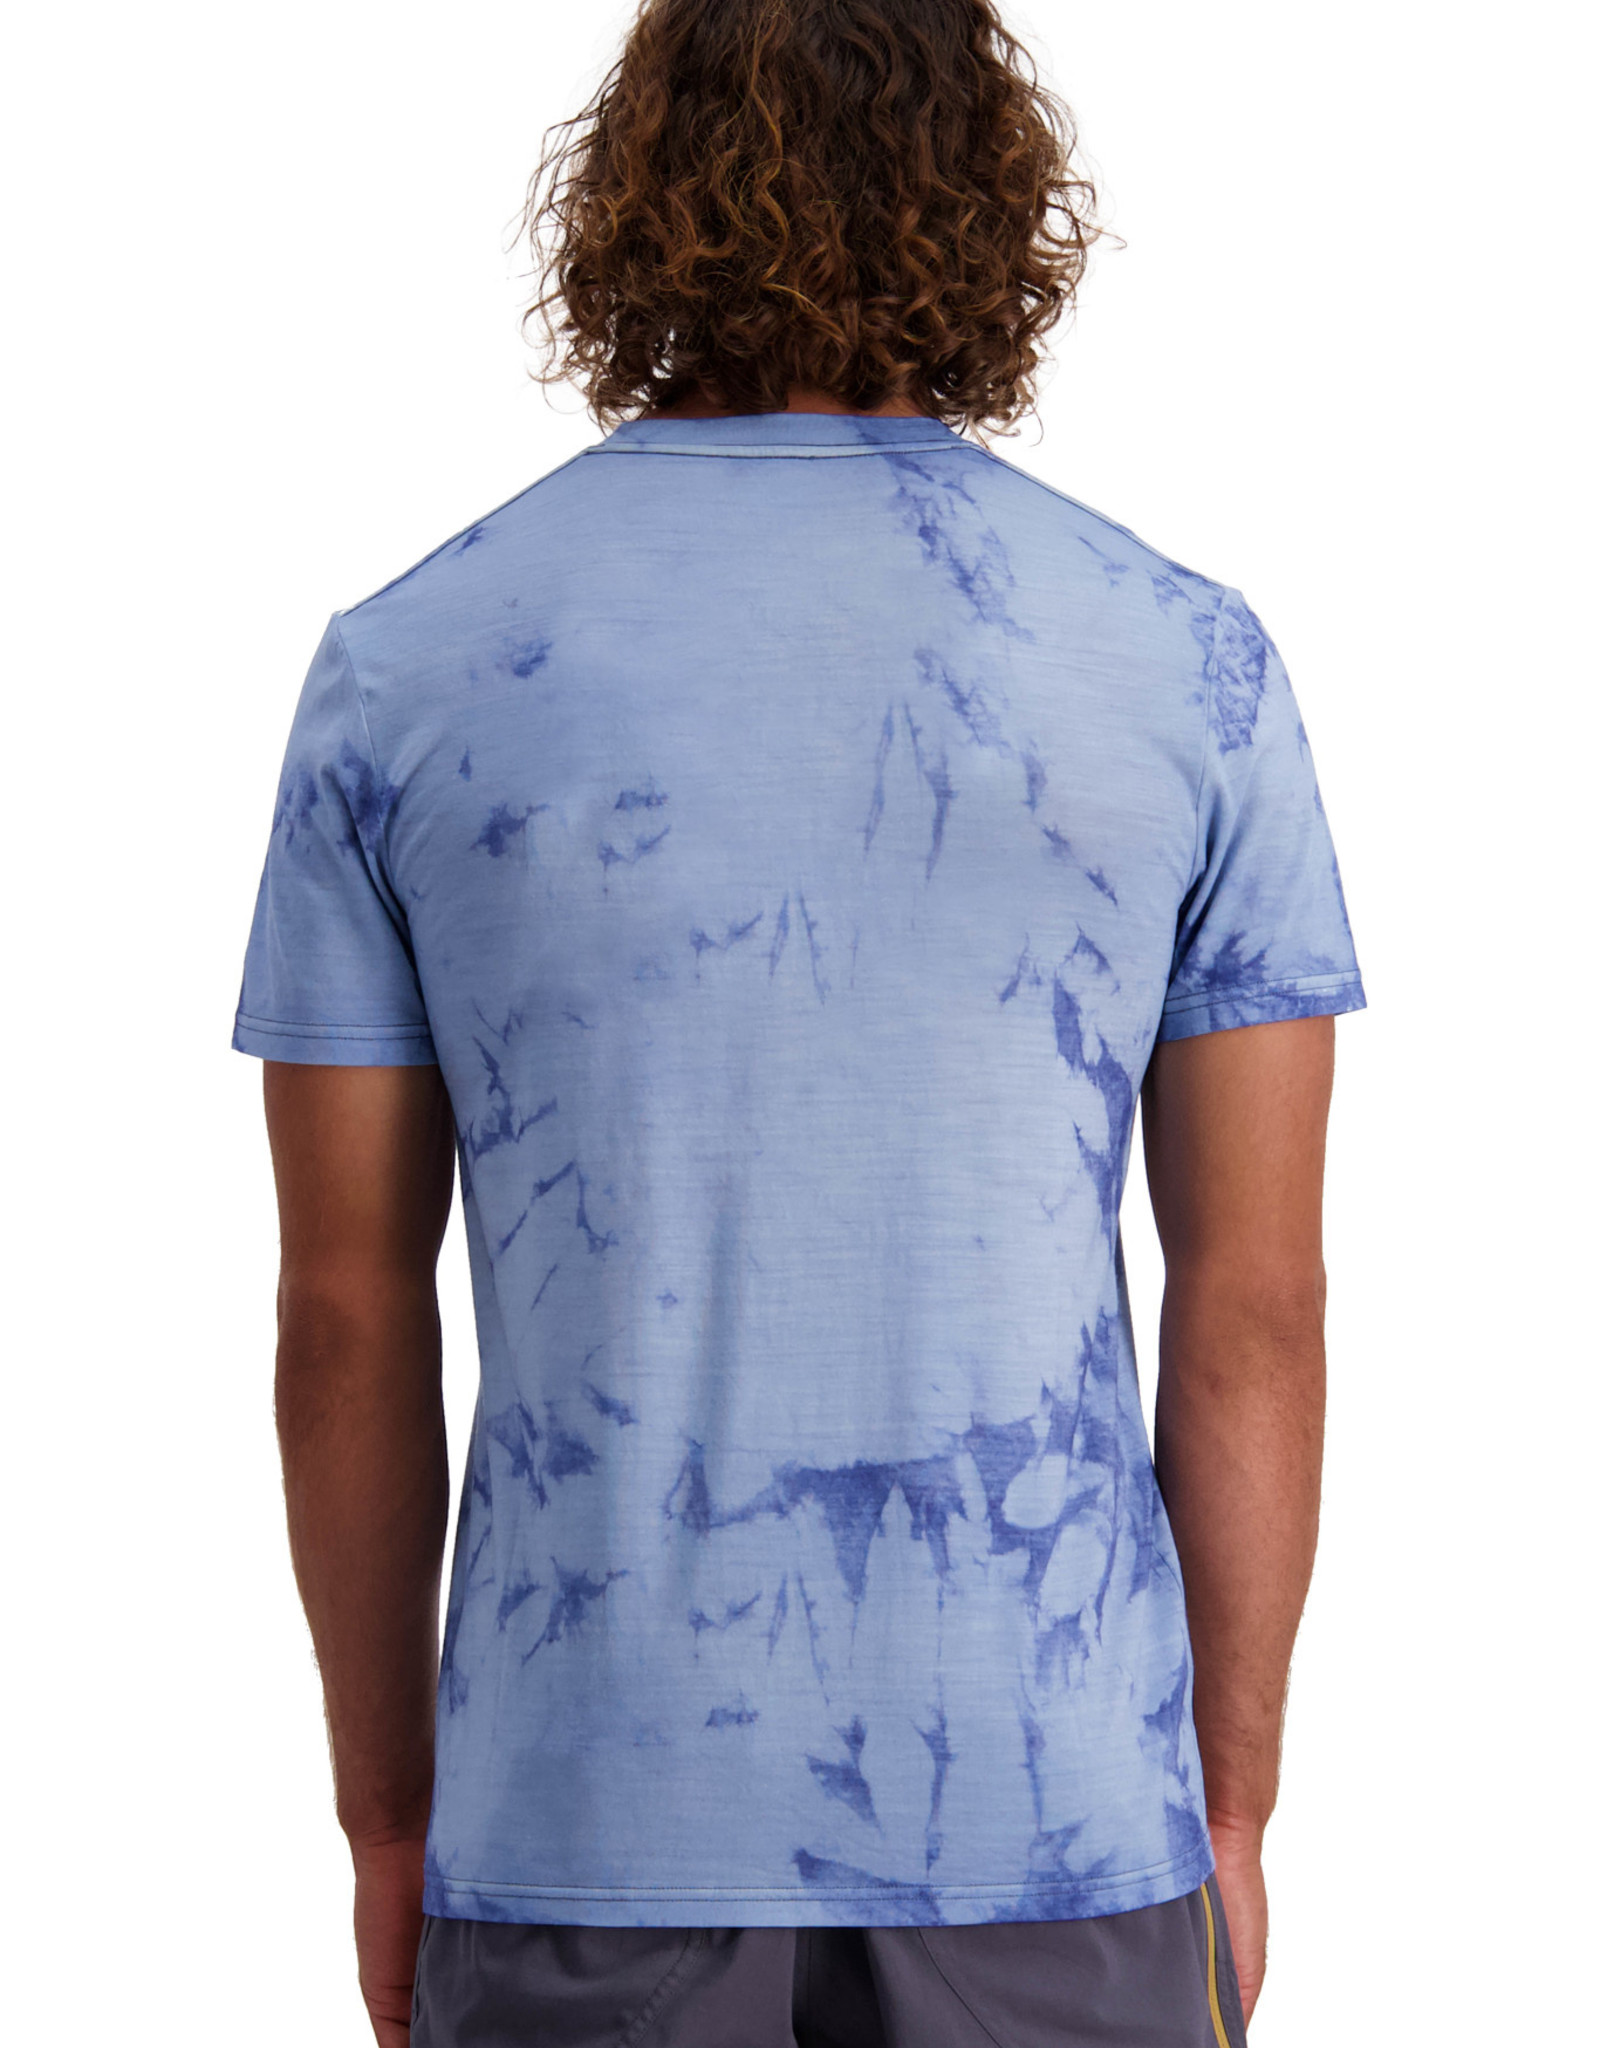 Mons Royale Mons Royale Men's Icon T-Shirt Tie Dyed -S2021